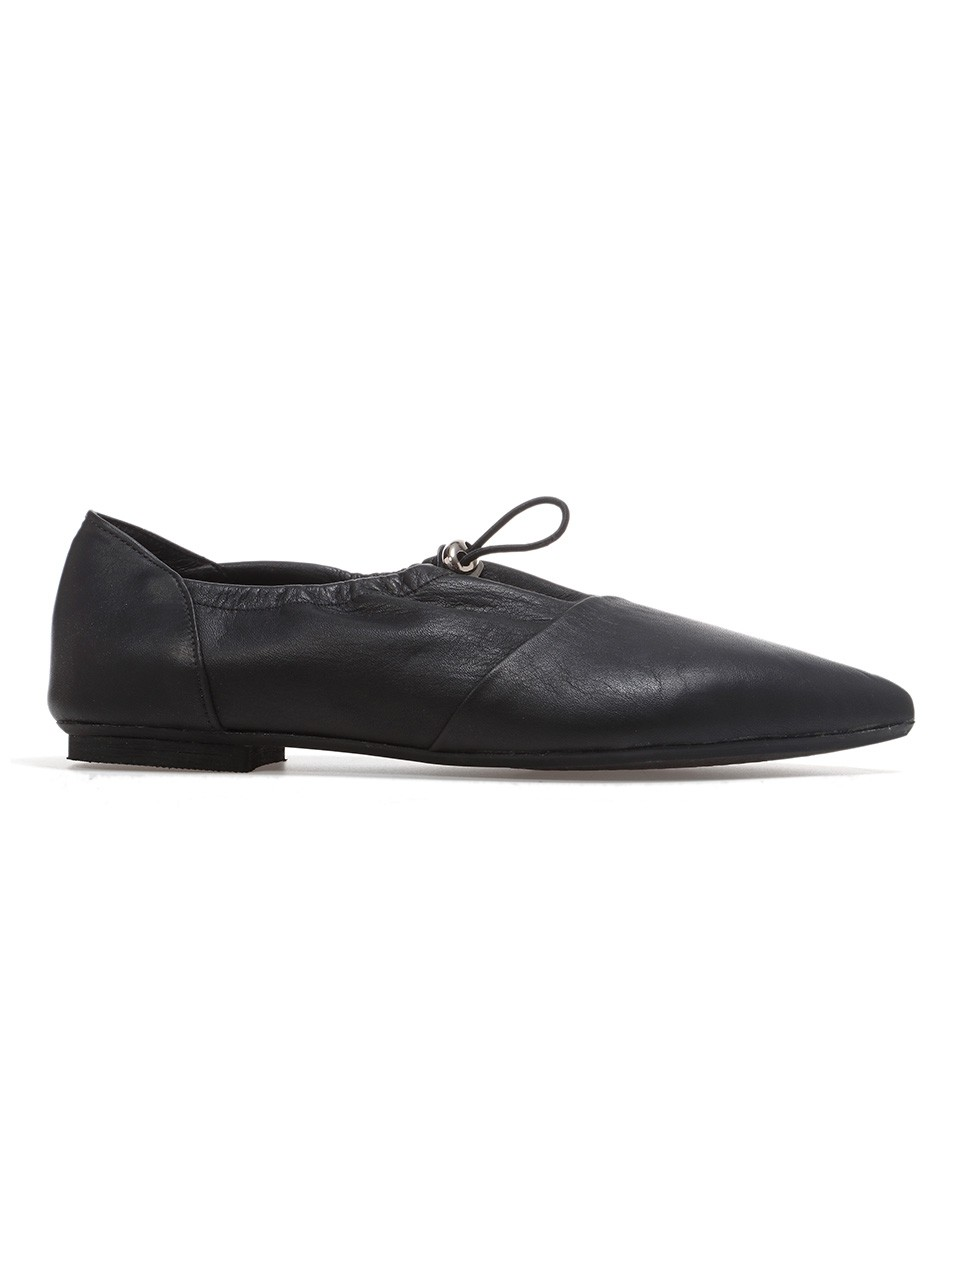 Leather Drawstring Ballet Flats